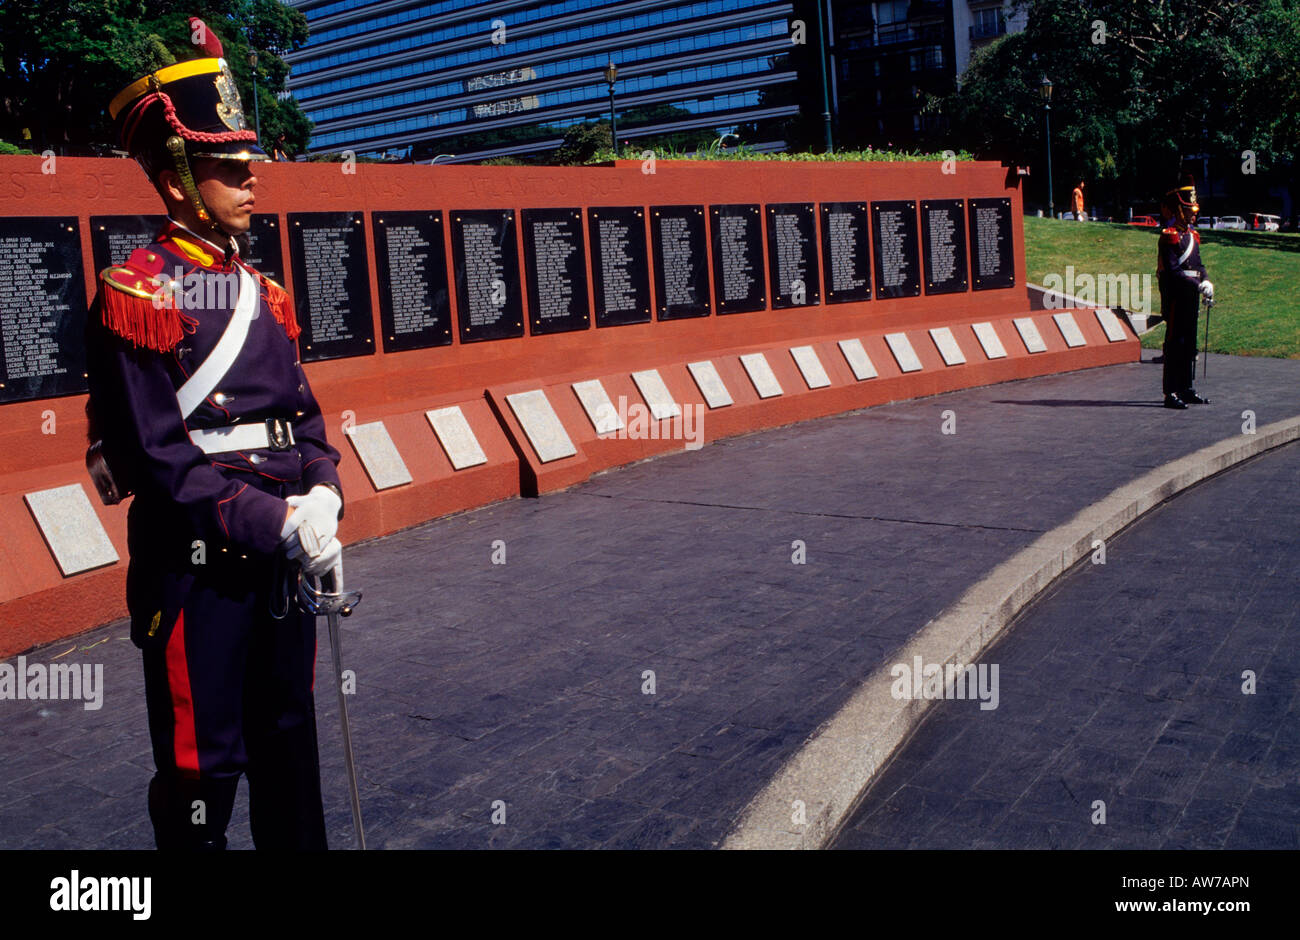 Monument to Falklands war heroes Plaza San Martín Buenos Aires Argentina - Stock Image